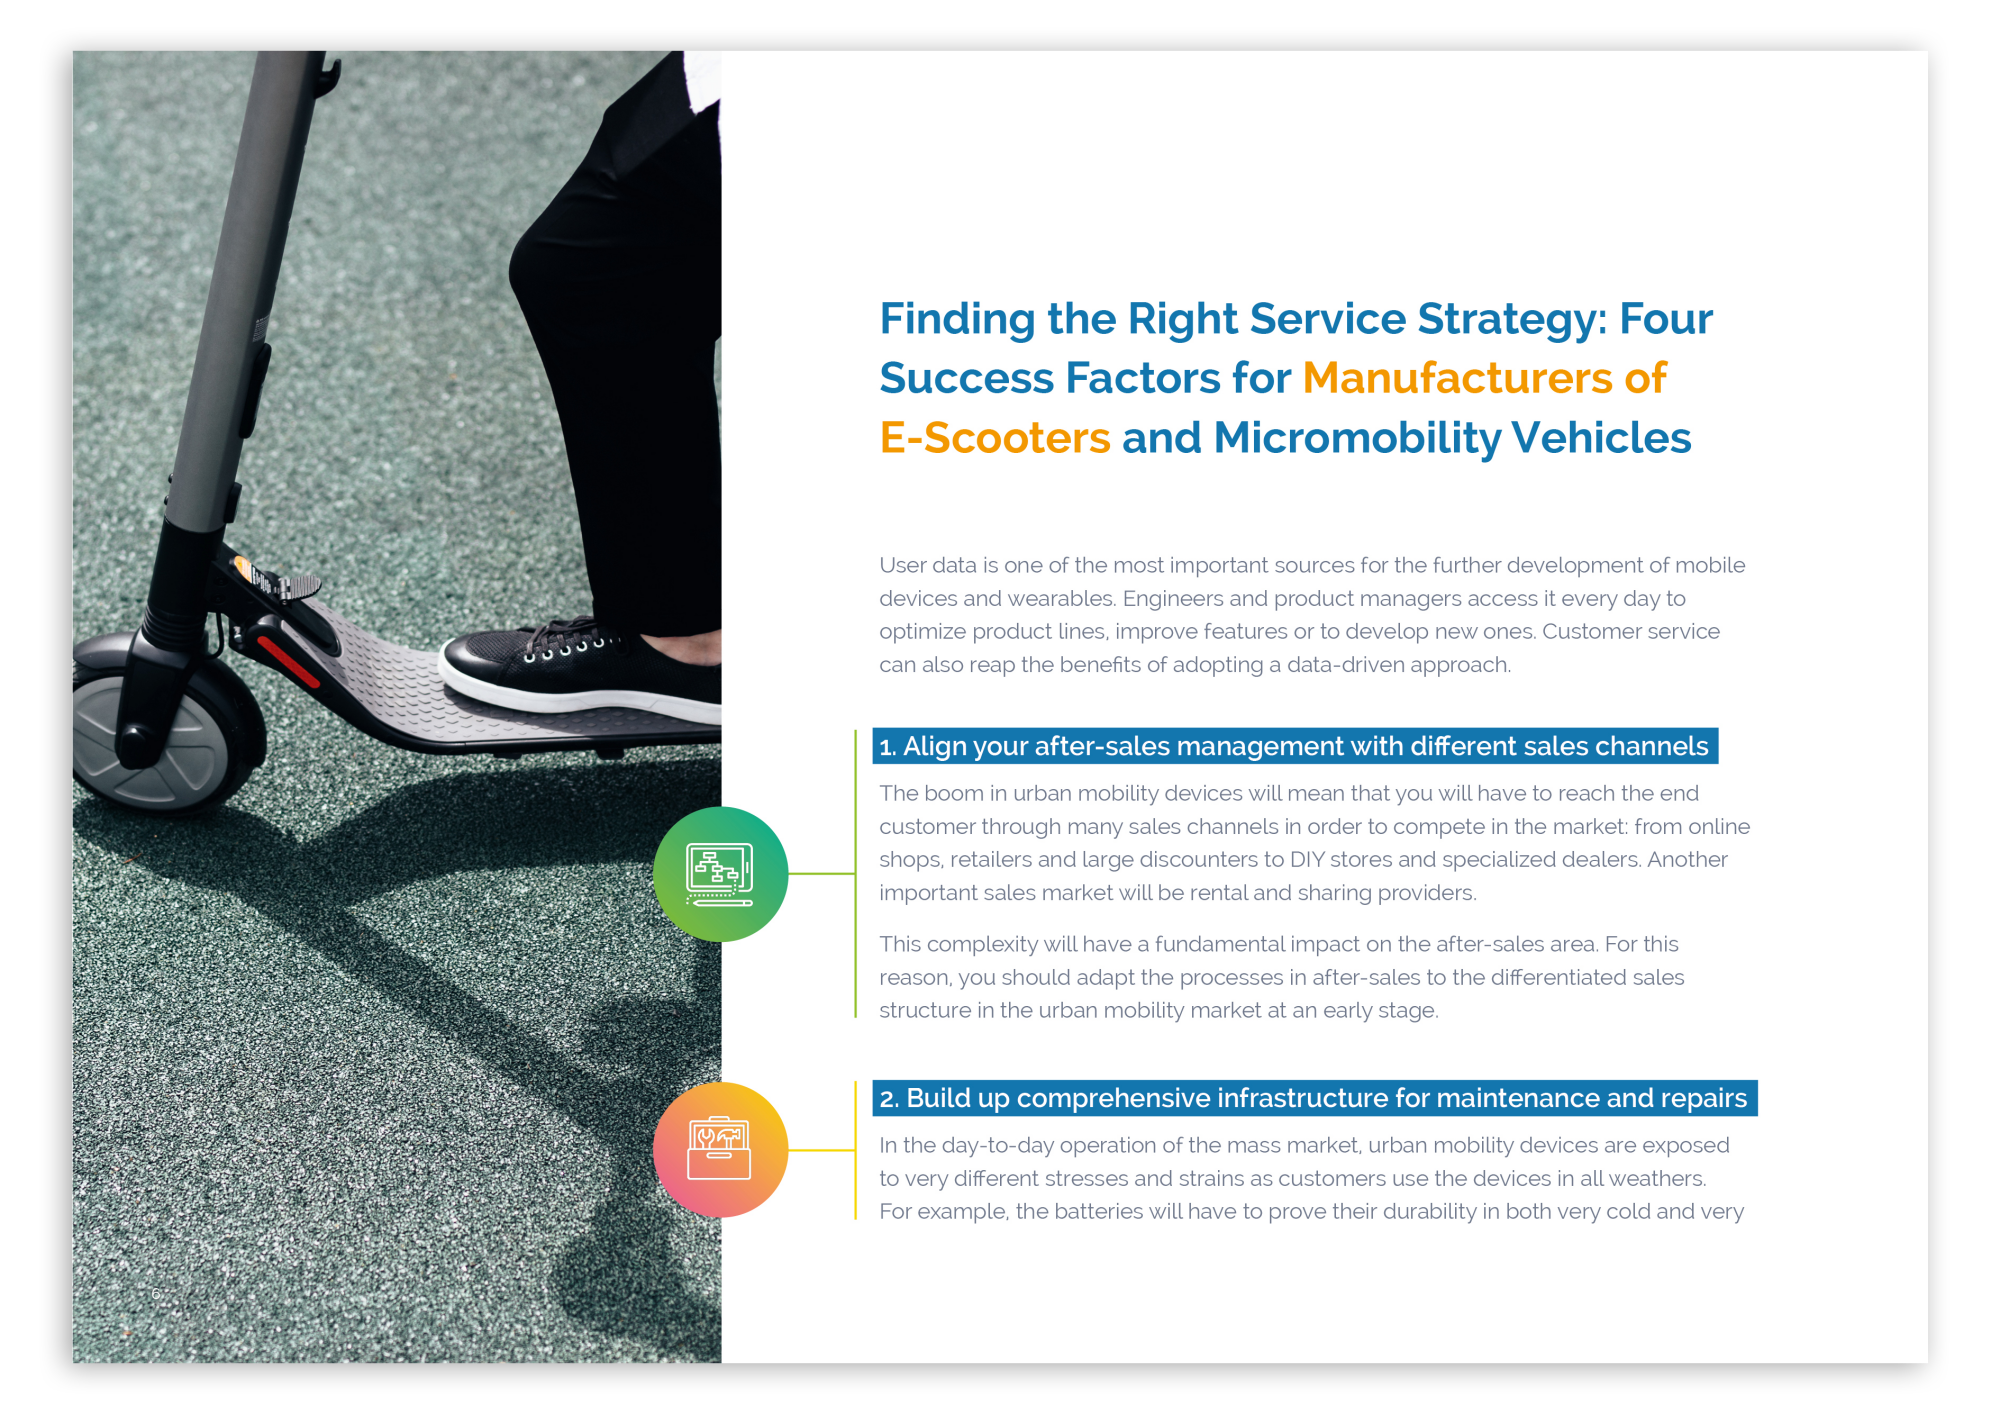 Finding the Right Service Strategy